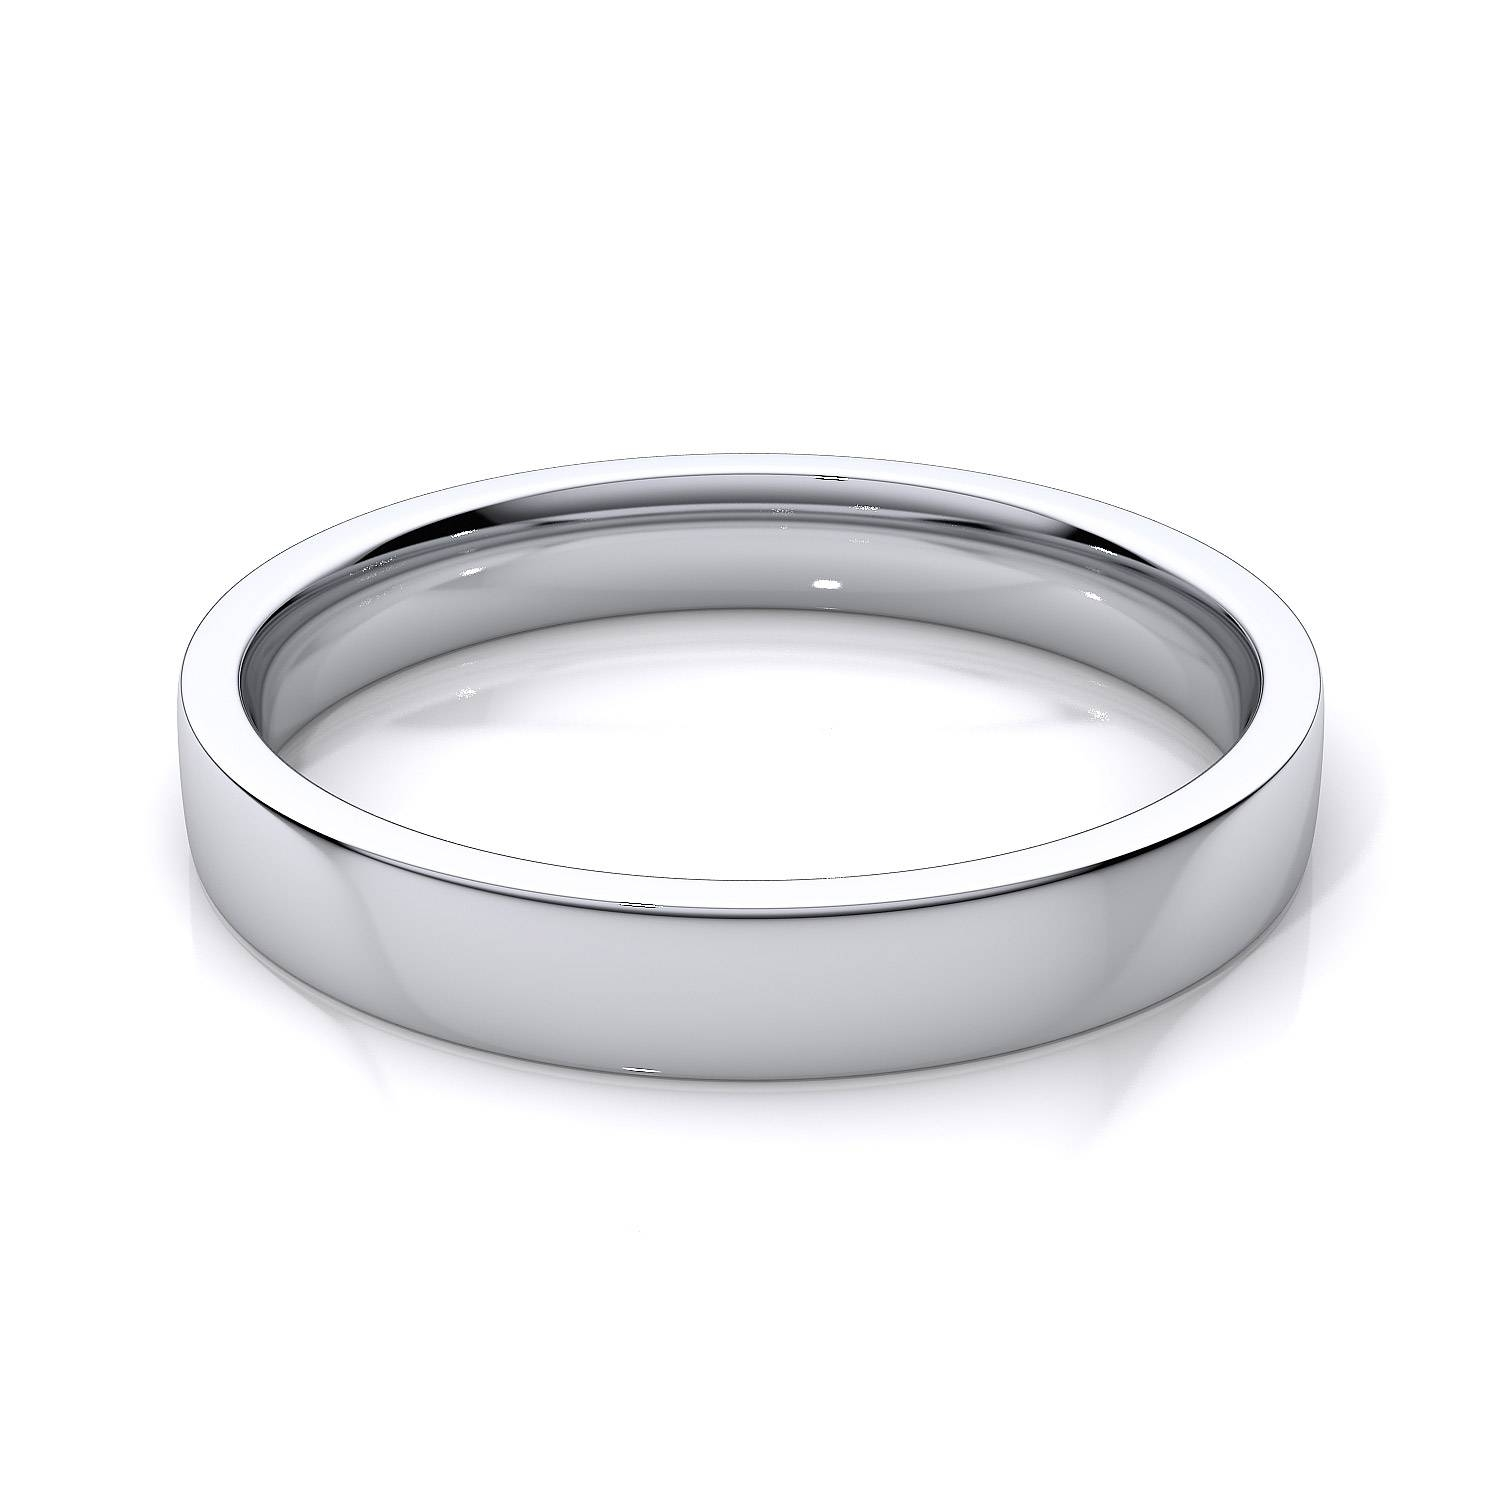 3Mm Women's Flat Comfort Fit Wedding Band In 18K White Gold Within Most Popular Plain Wedding Bands For Women (View 2 of 15)